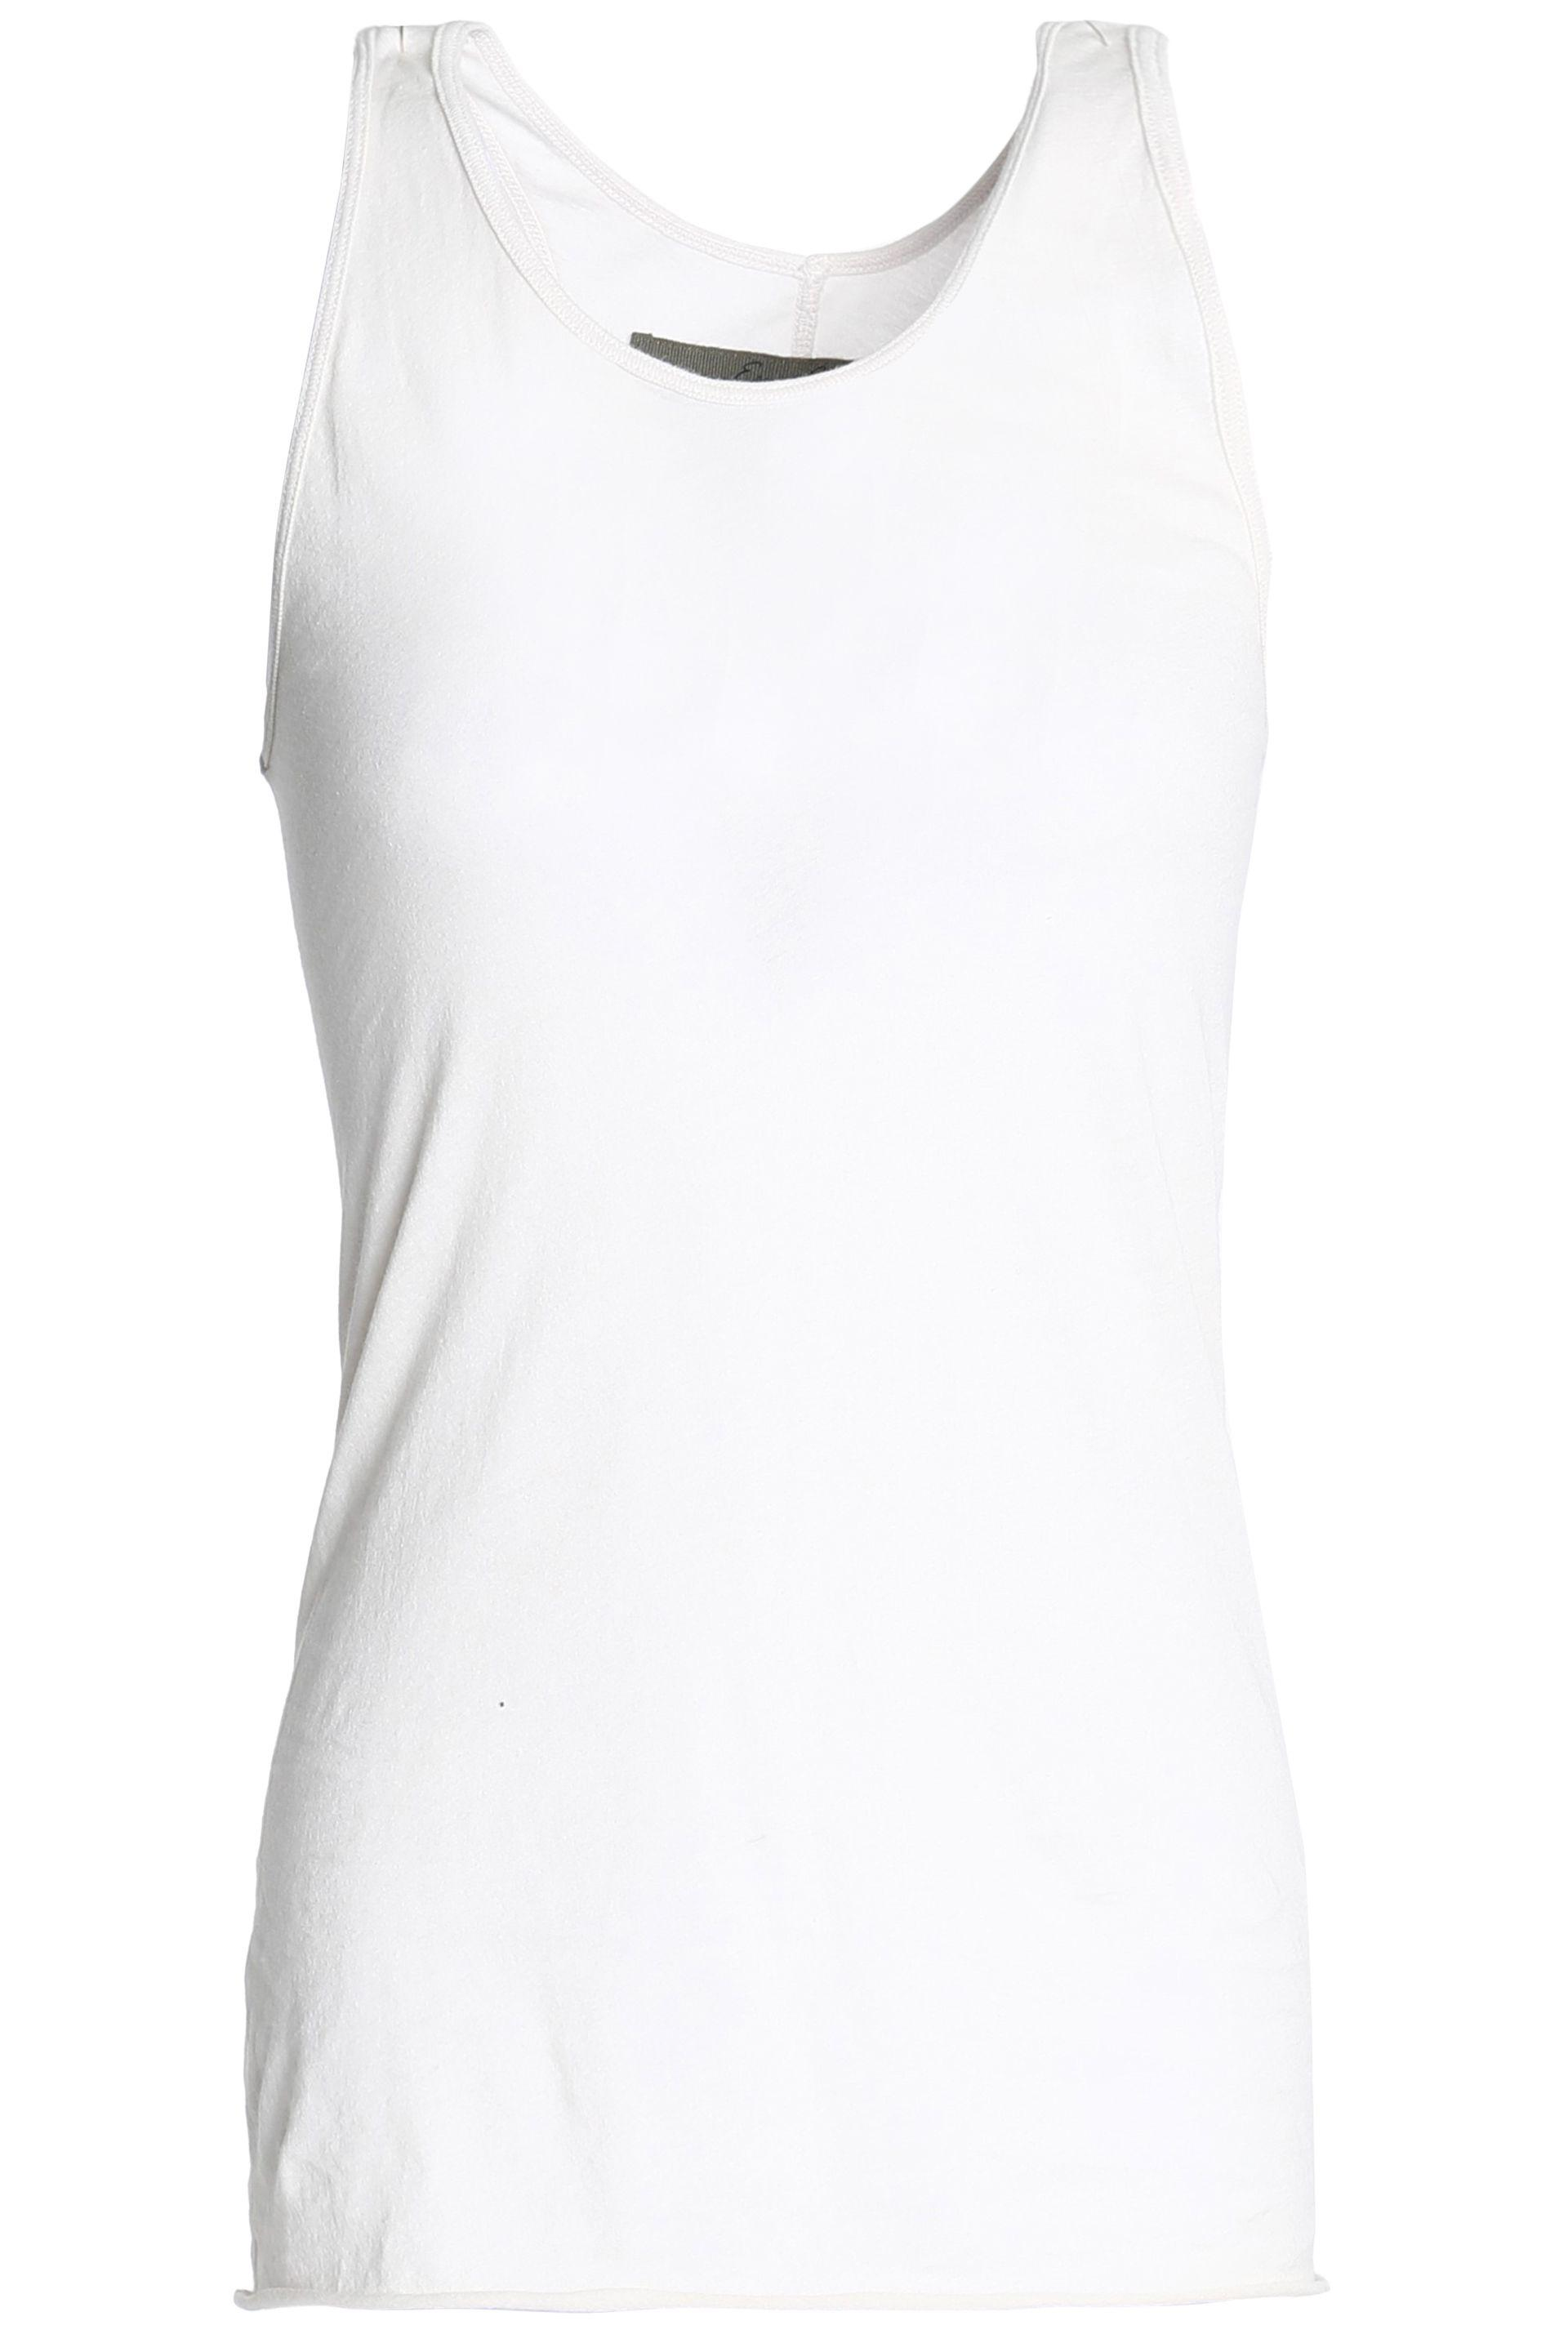 Prices Online Enza Costa Woman Slub Pima Cotton-jersey Tank Neutral Size L Enza Costa Sale 2018 Cheap Price Factory Outlet New Style Footlocker Pictures Cheap Price gR6XZv